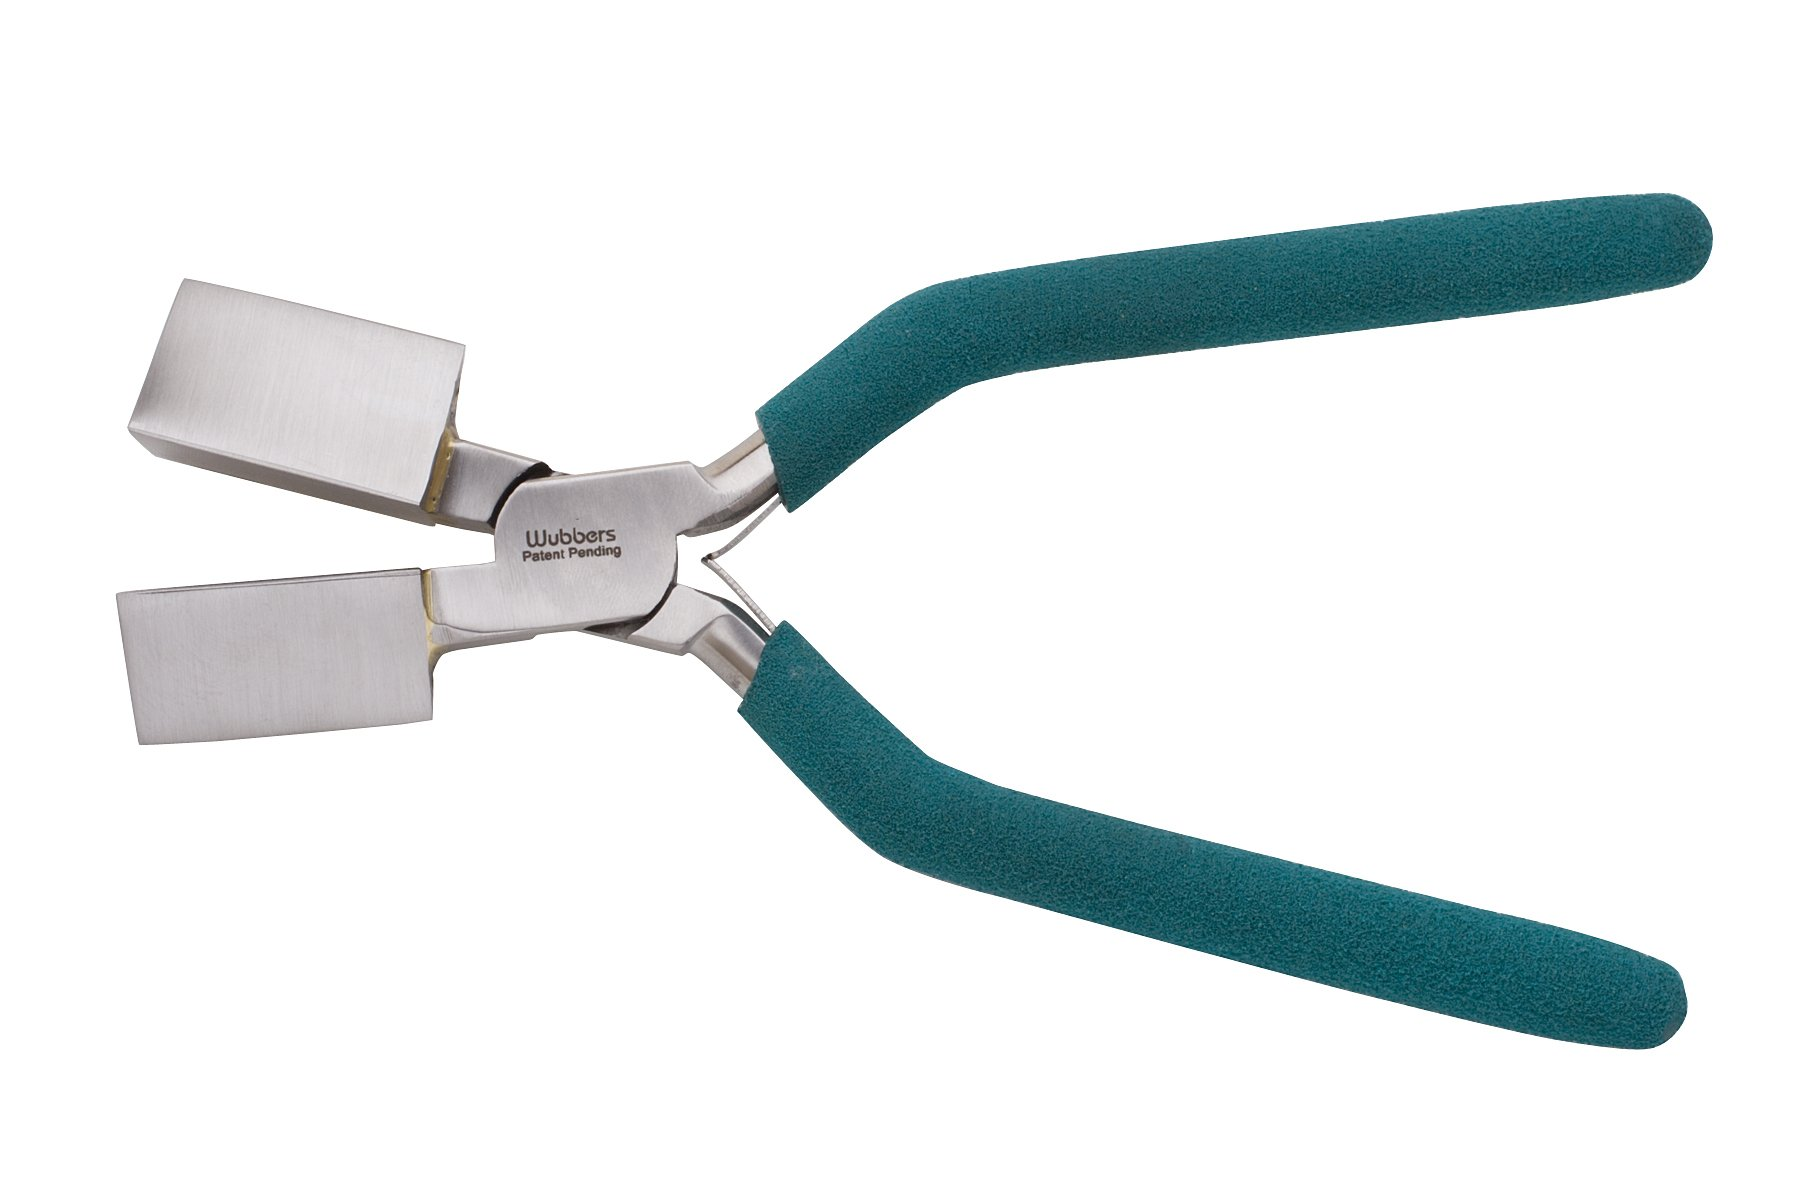 Jumbo Triangular Mandrel Triangle Wubbers Wire Bending Forming Pliers by PMC Supplies LLC